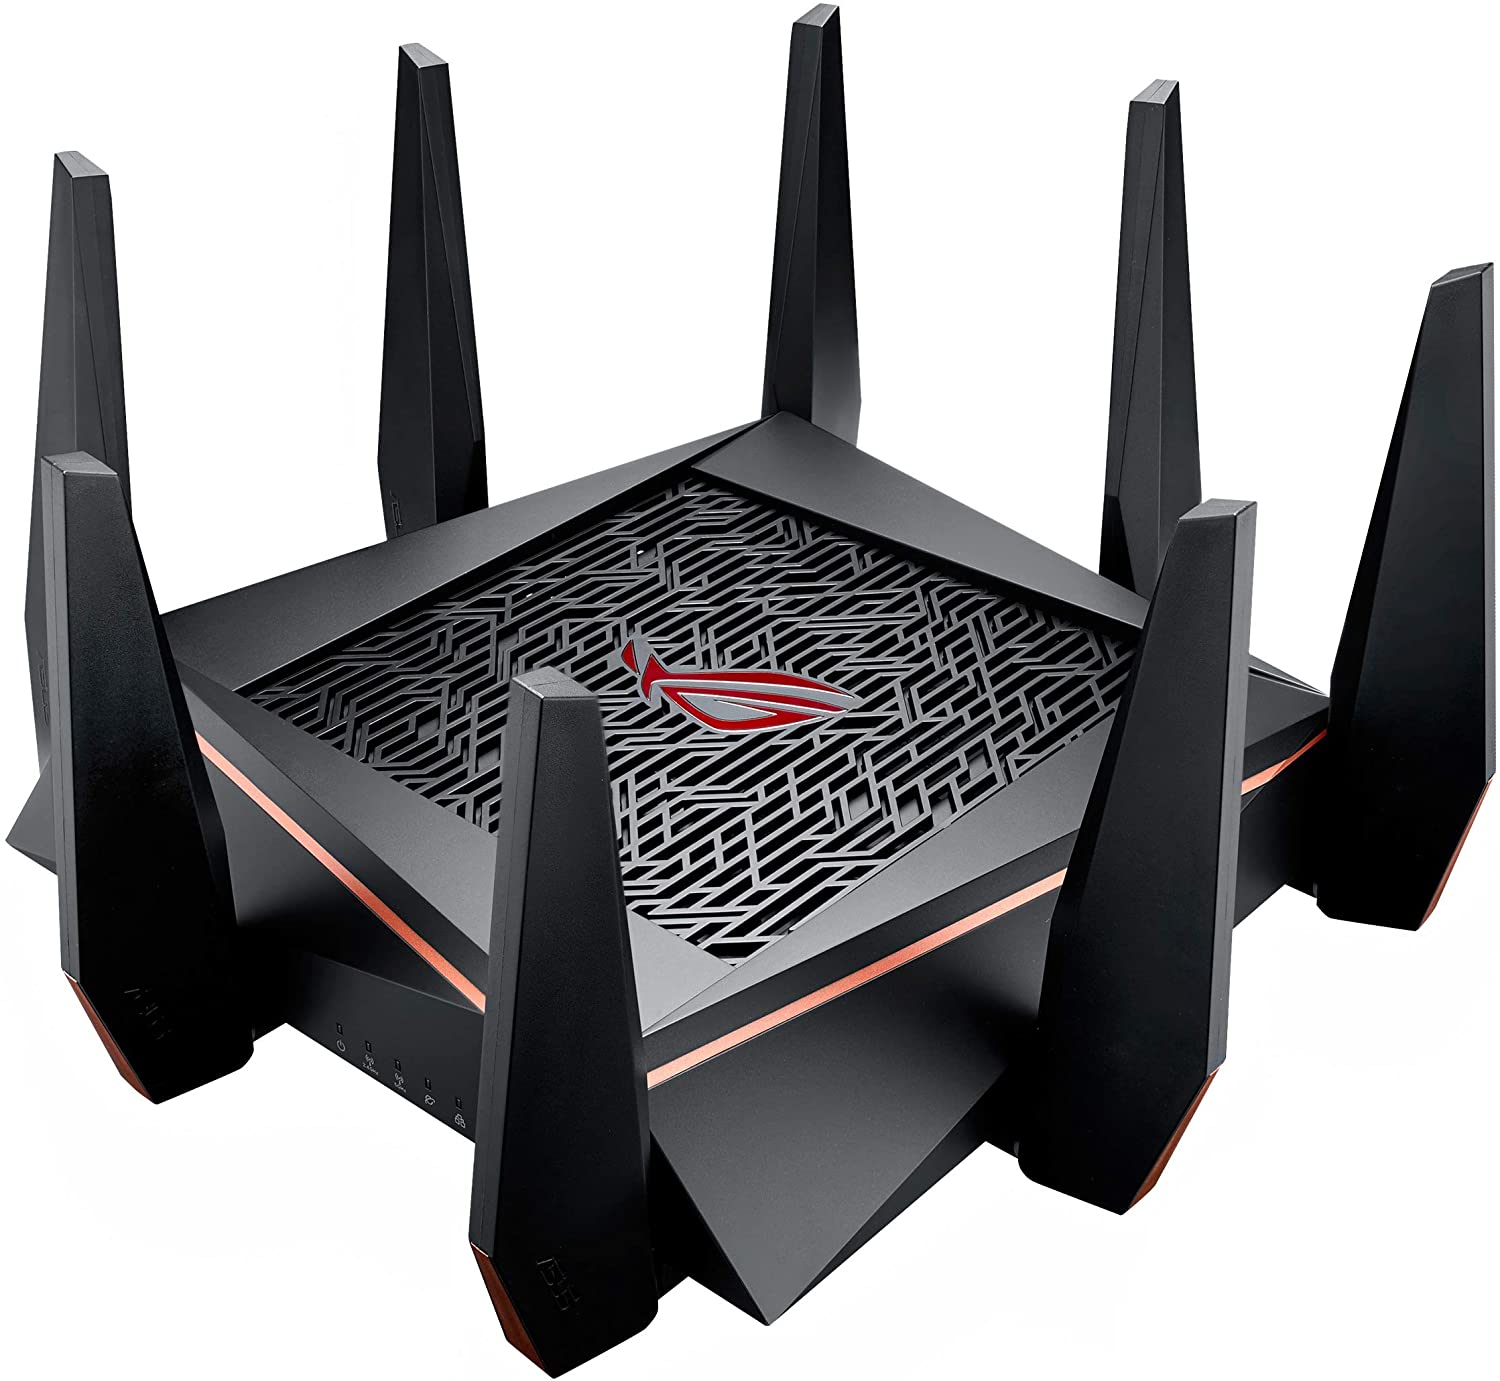 ASUS ROG Rapture WiFi Gaming Router